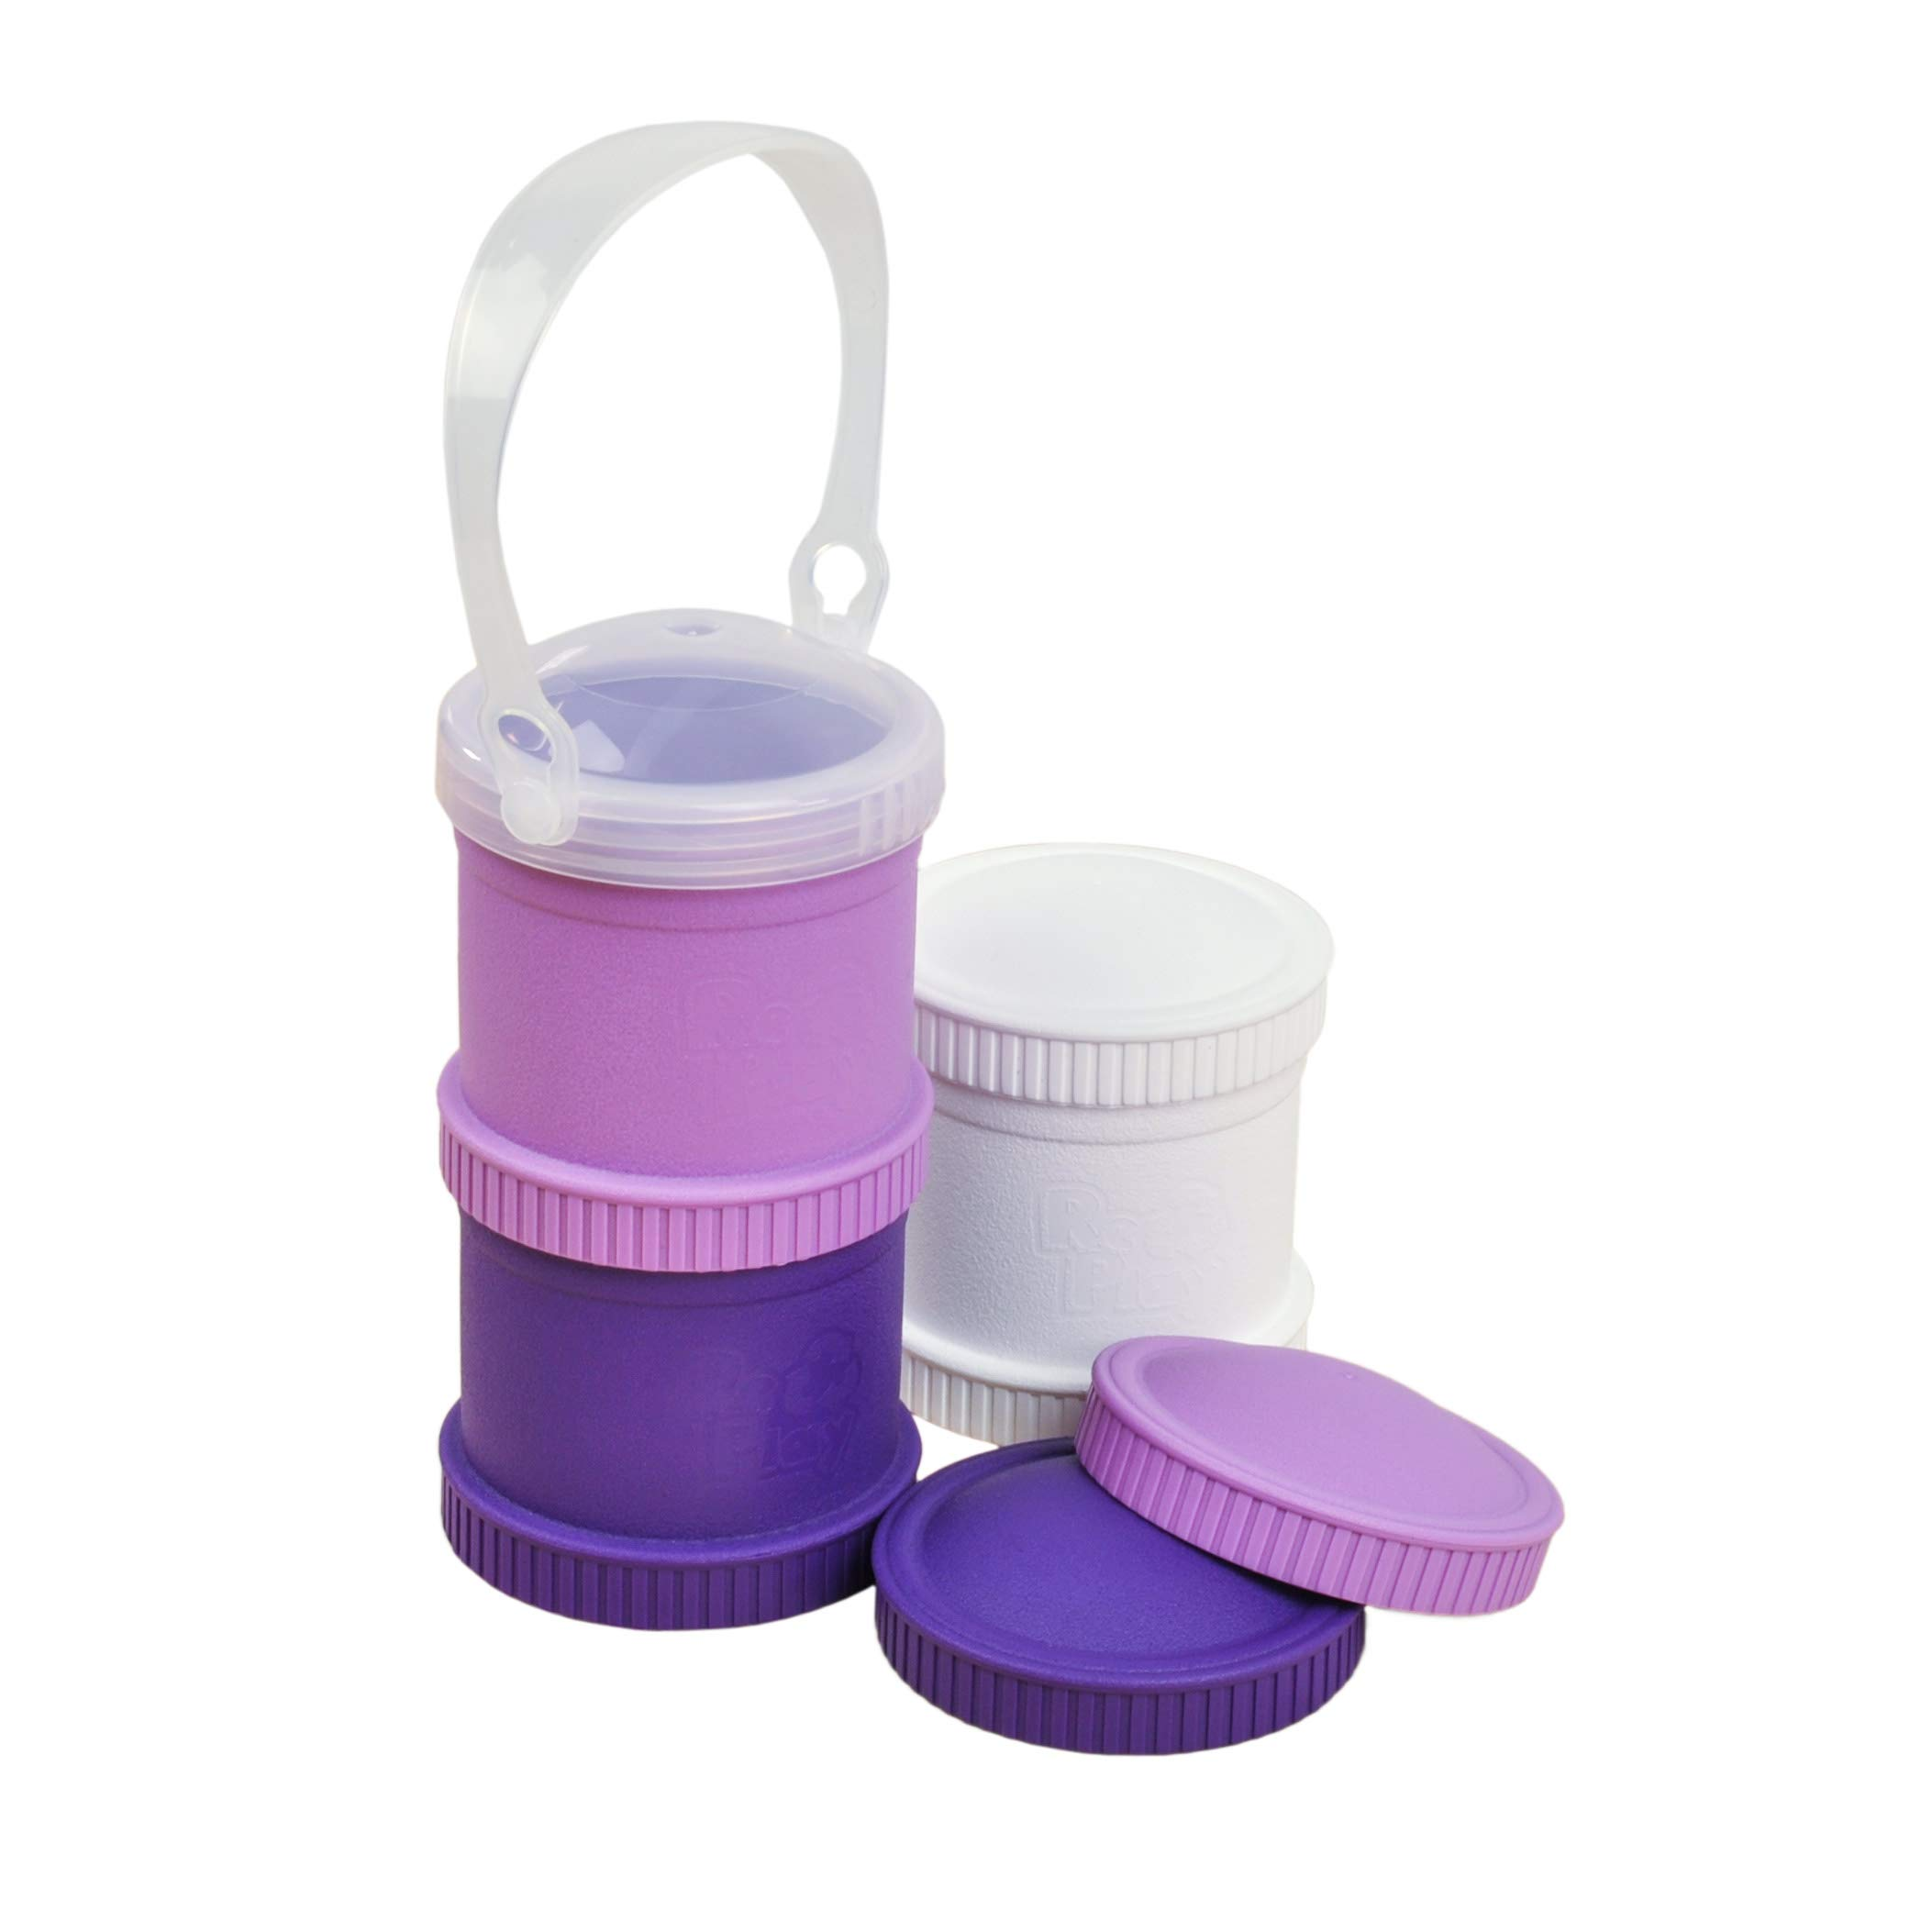 Re-Play Made in The USA 7 Piece Stackable Food and Snack Storage Containers for Babies, Toddlers and Kids of All Ages - White, Purple, Amethyst (Violet)